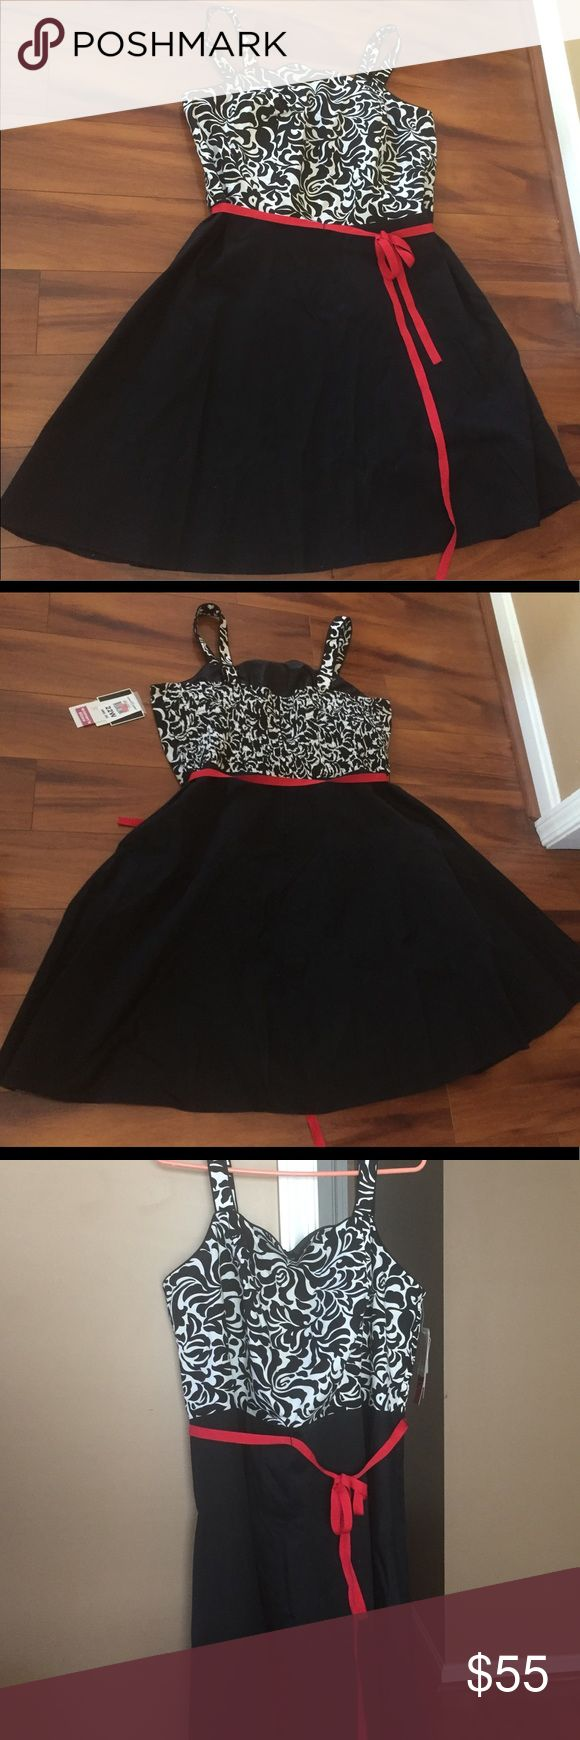 """NWT Dress NWT never worn Back has stretch & zipper. Red tie belt is removable 2 button straps to adjust. ➡️I have stitched the straps (inside) @1 1/2"""" because they were too long for me....THE STITCHING CAN BE REMOVED EASILY & I WILL EVEN REMOVE IT IF ASKED TO. Priced accordingly.  Size 22 Dress is @36"""" long, I am 5'6"""" and it hits at my knees. Slight flare to skirt.  97% cotton 3% spandex Wash cold, line dry, iron if necessary R & K Originals Woman Dresses"""